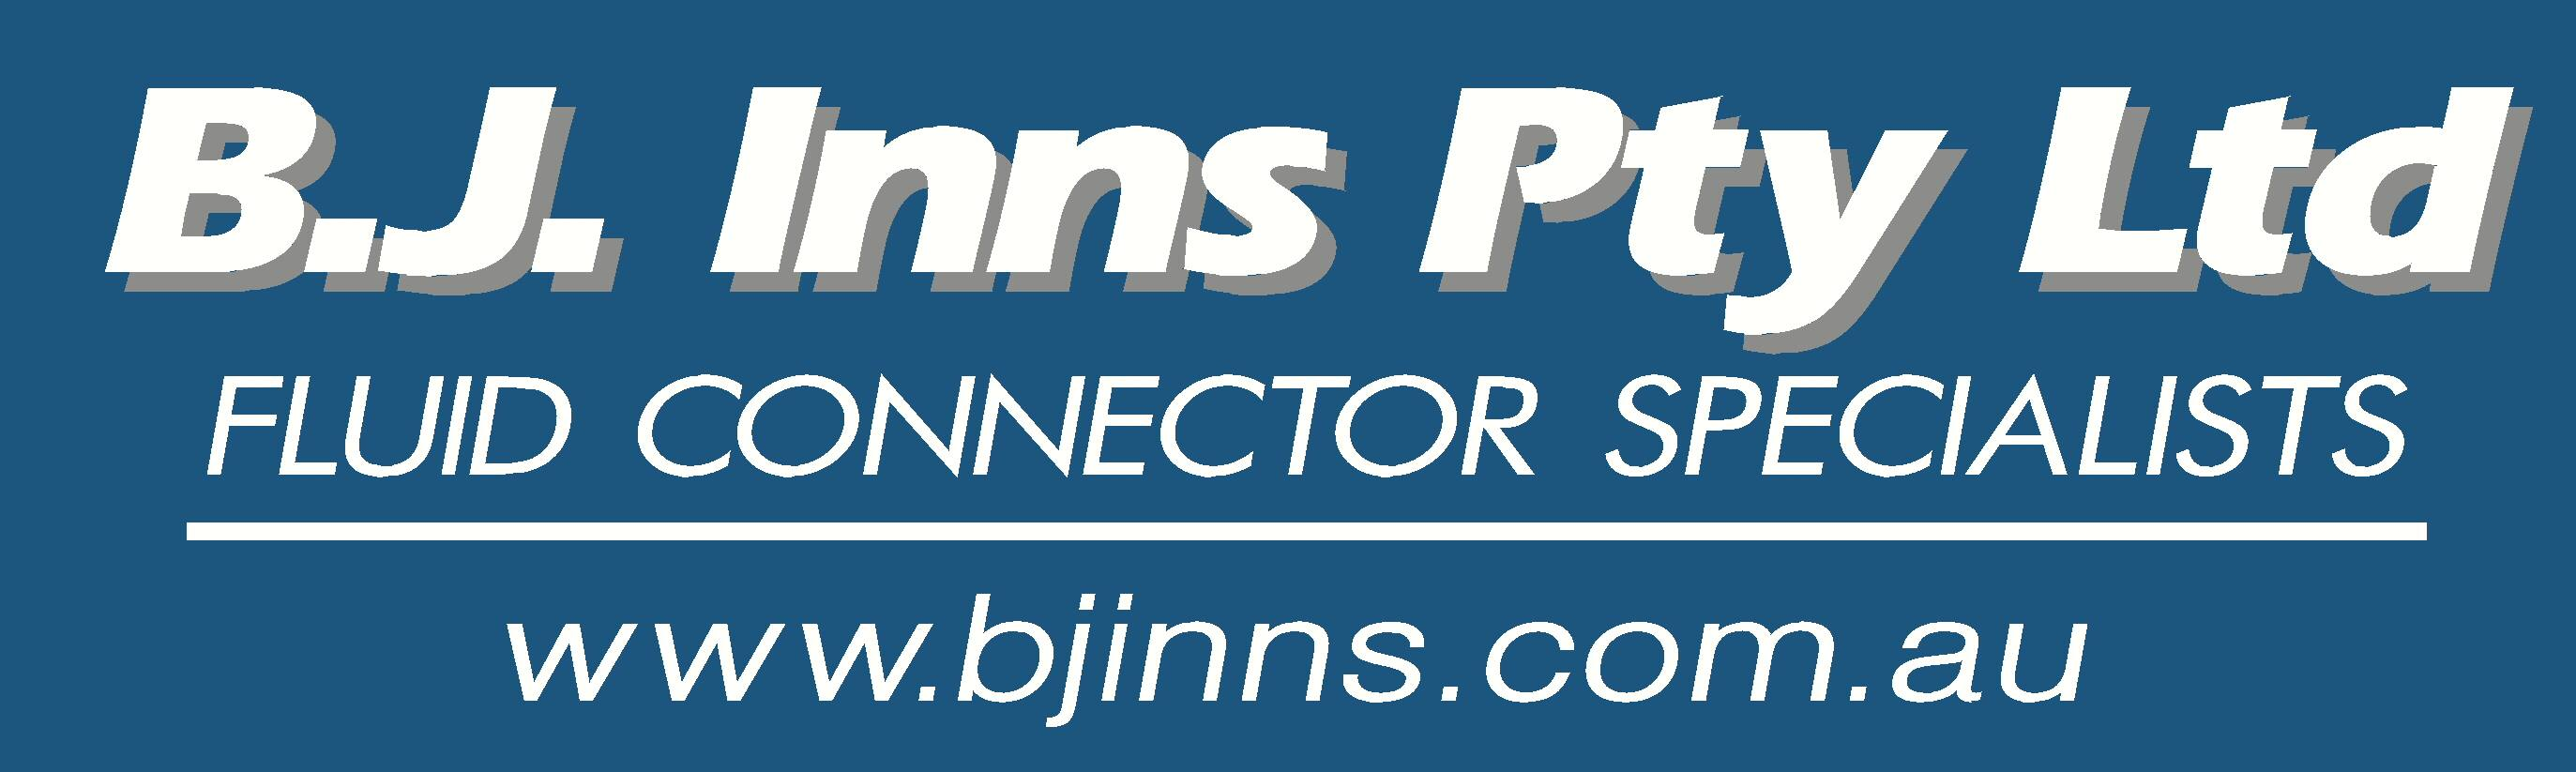 B.J. Inns Pty Ltd